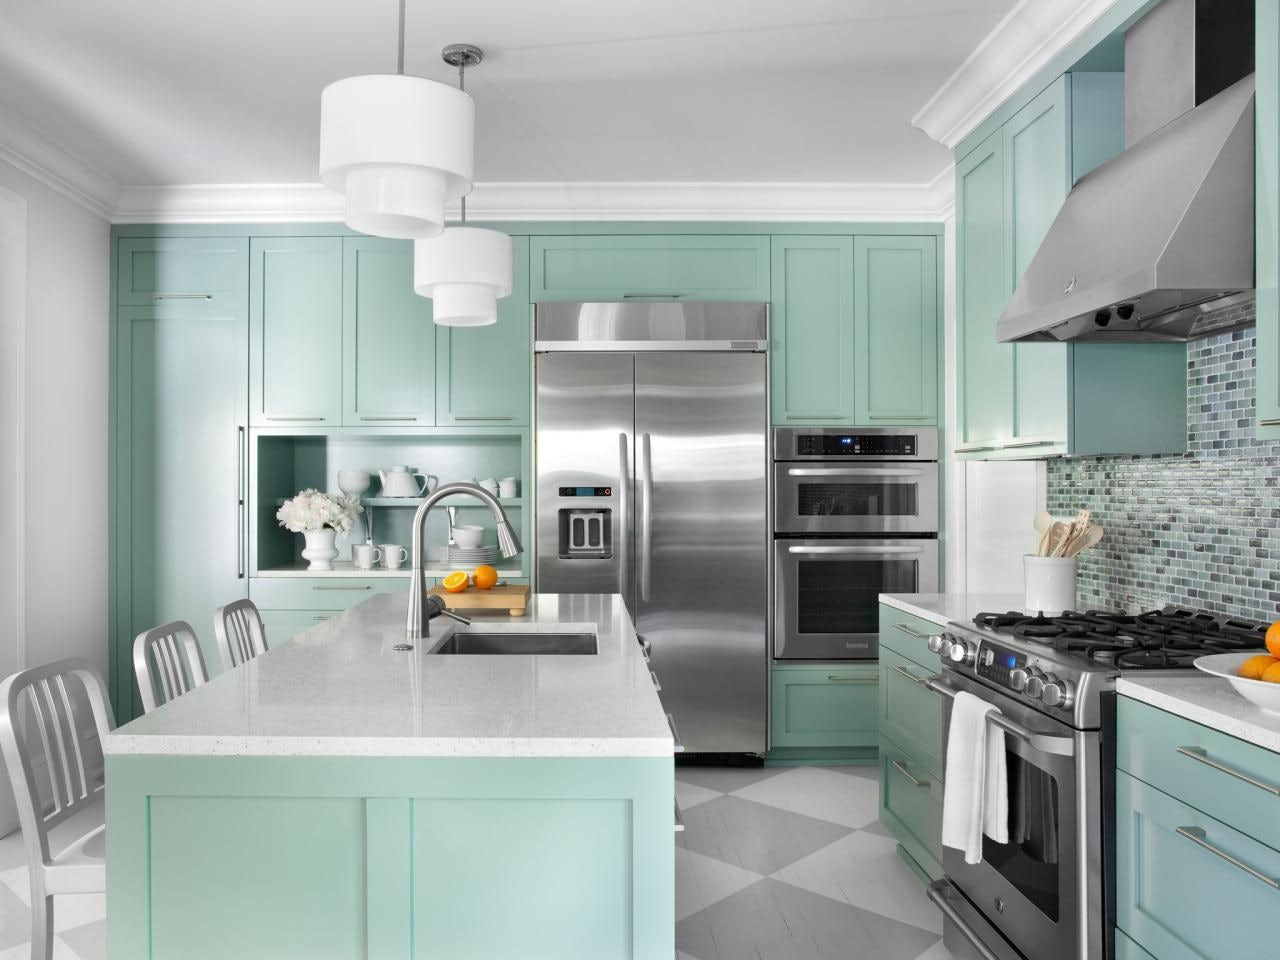 How to Choose the Right Kitchen Cabinet Materials for Your Project - Architizer Journal